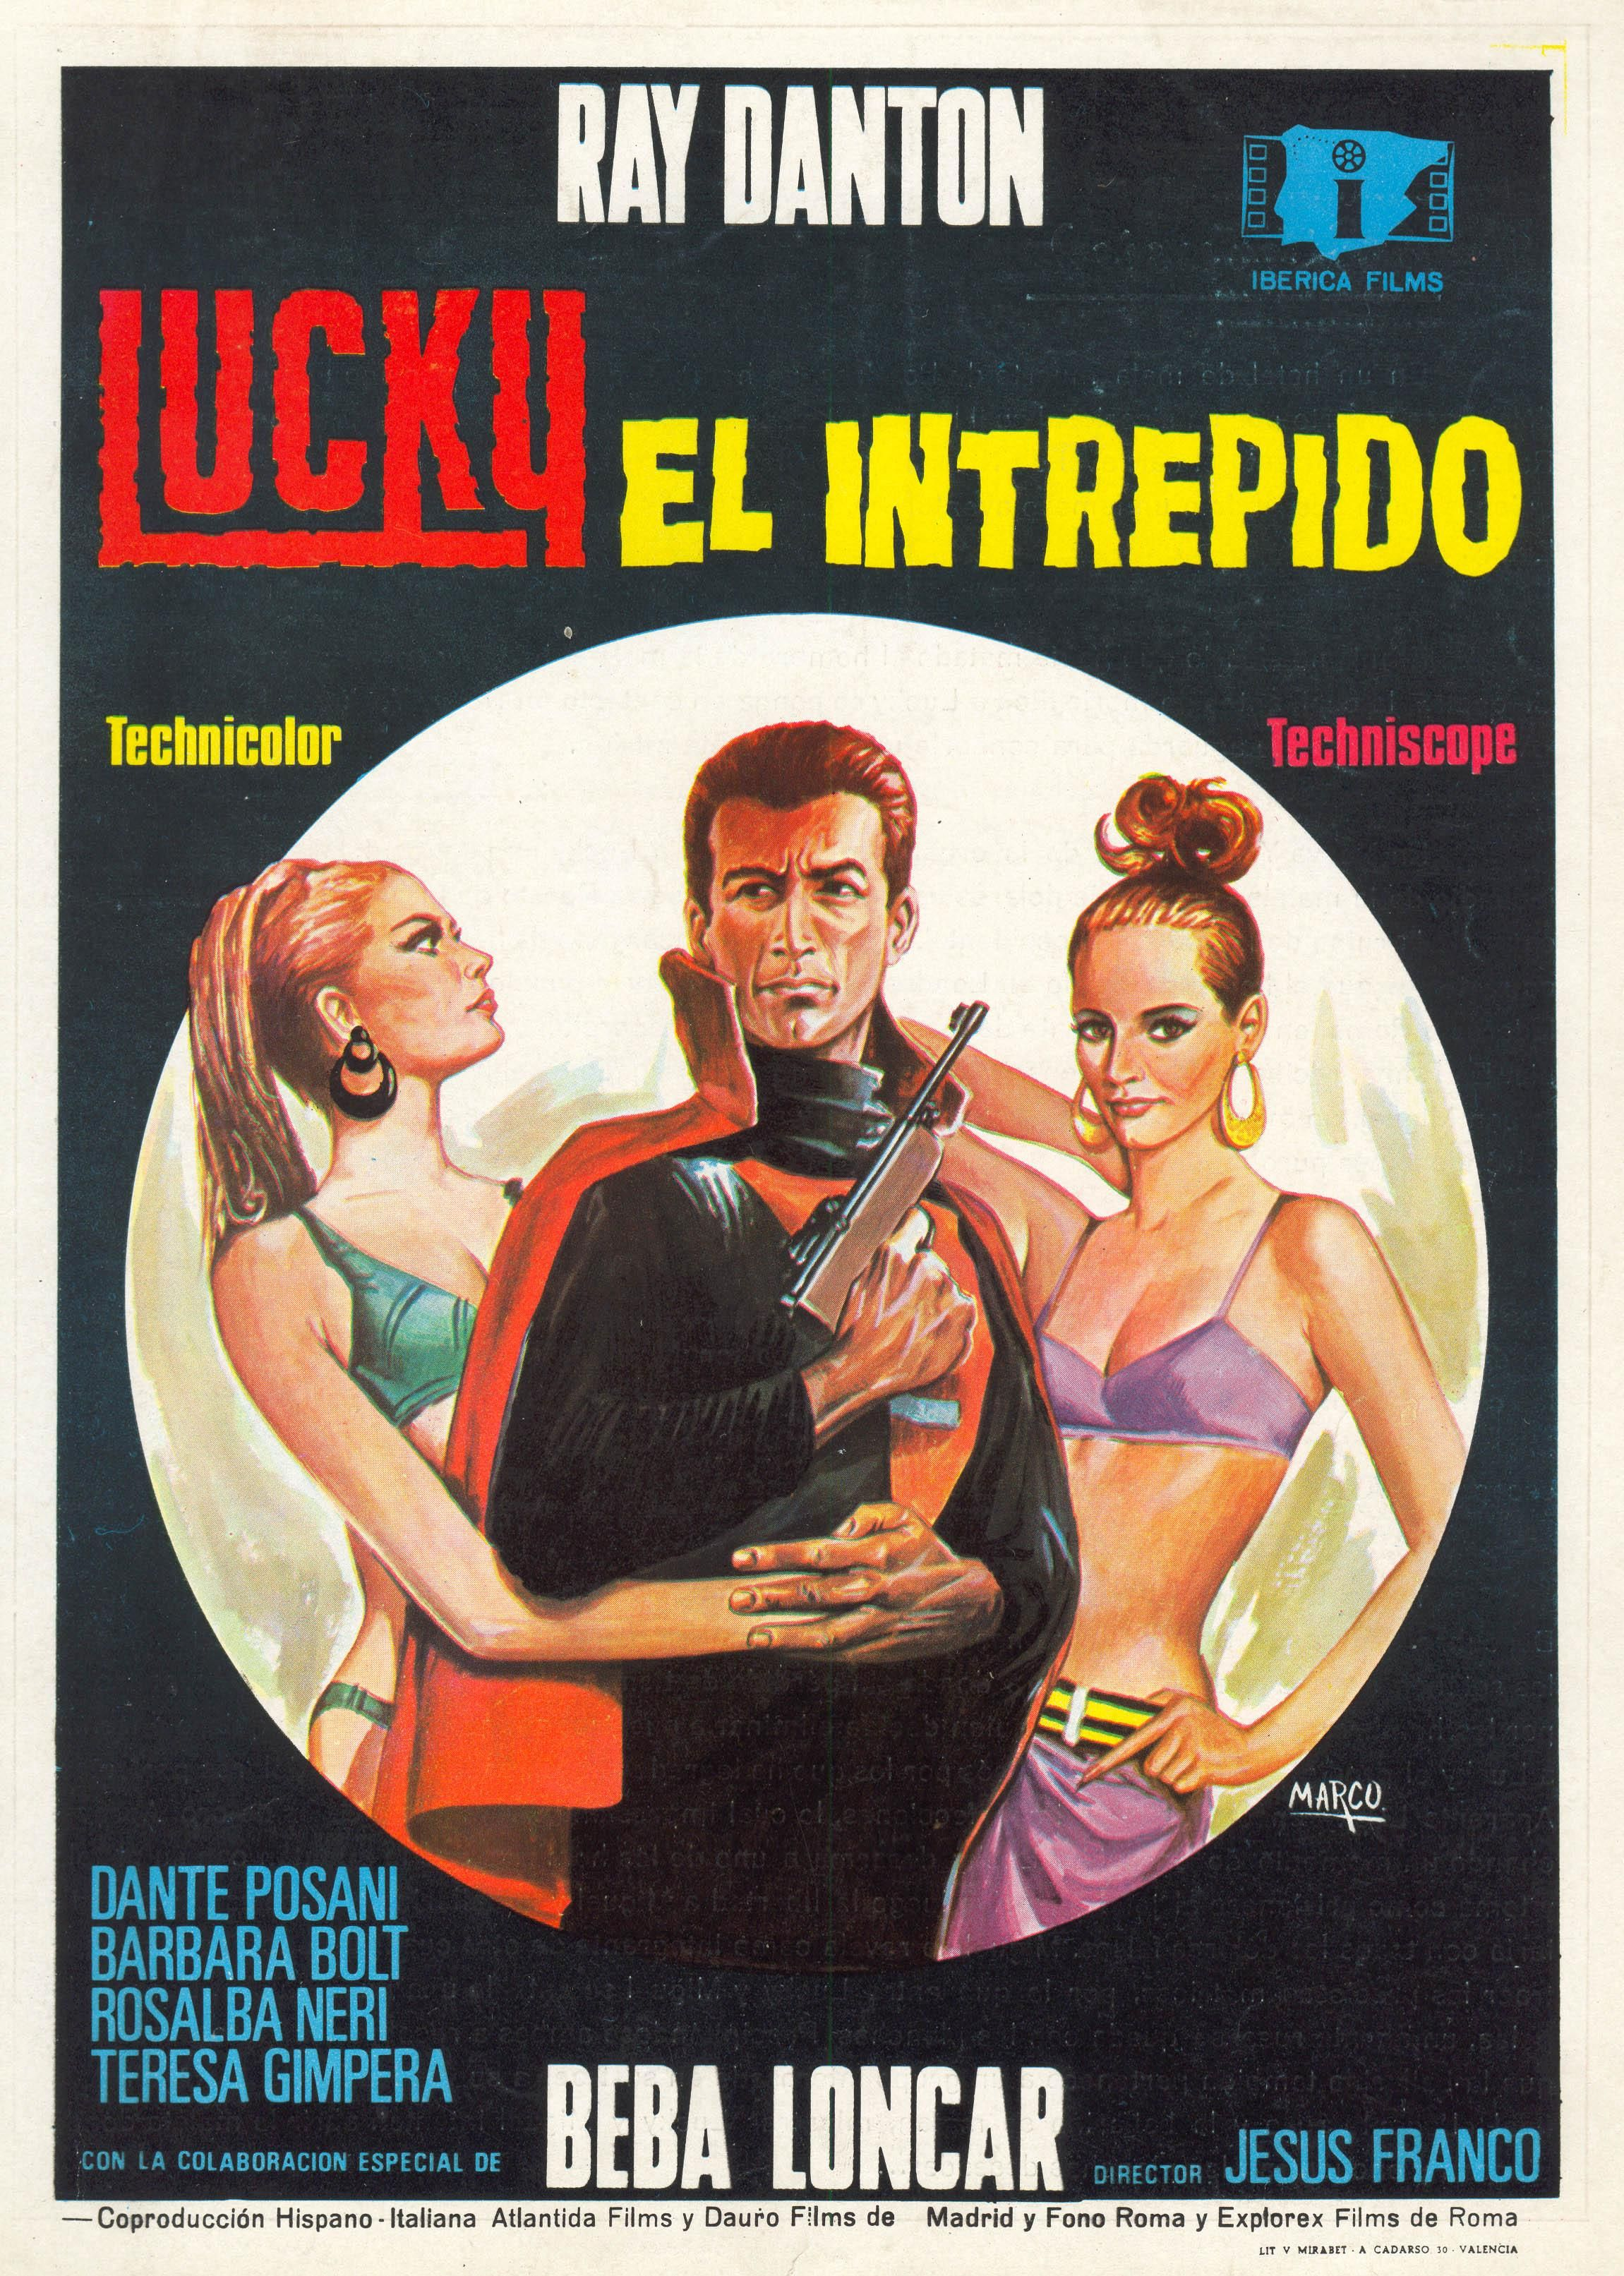 LUCKY THE INSCRUTABLE | Movie Posters (part 2) | Pinterest | Horror ...